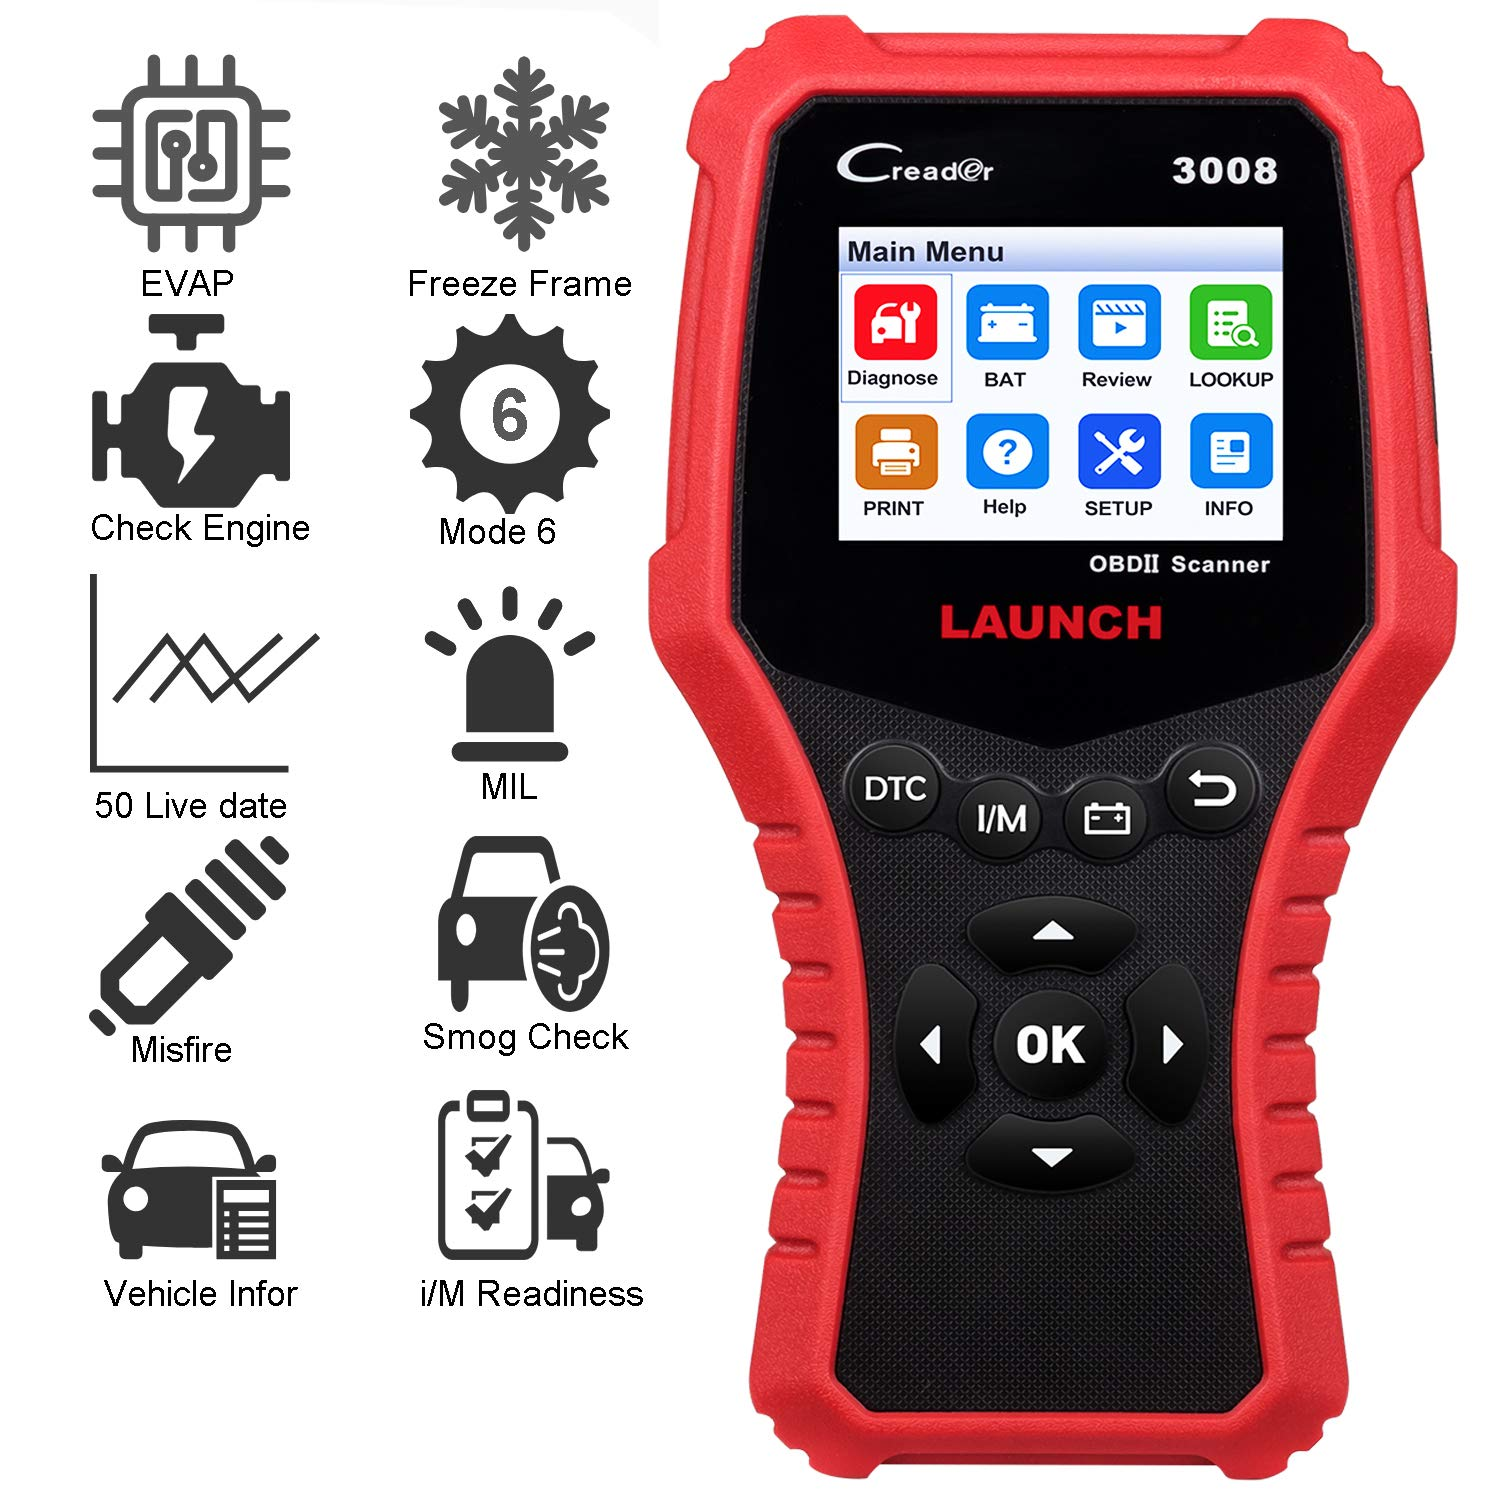 LAUNCH Creader 3008 OBD2 Scanner Automotive Car Diagnostic Tool Support  Full OBD2 Function with Battery Voltage Testing Function OBDII Engine Code